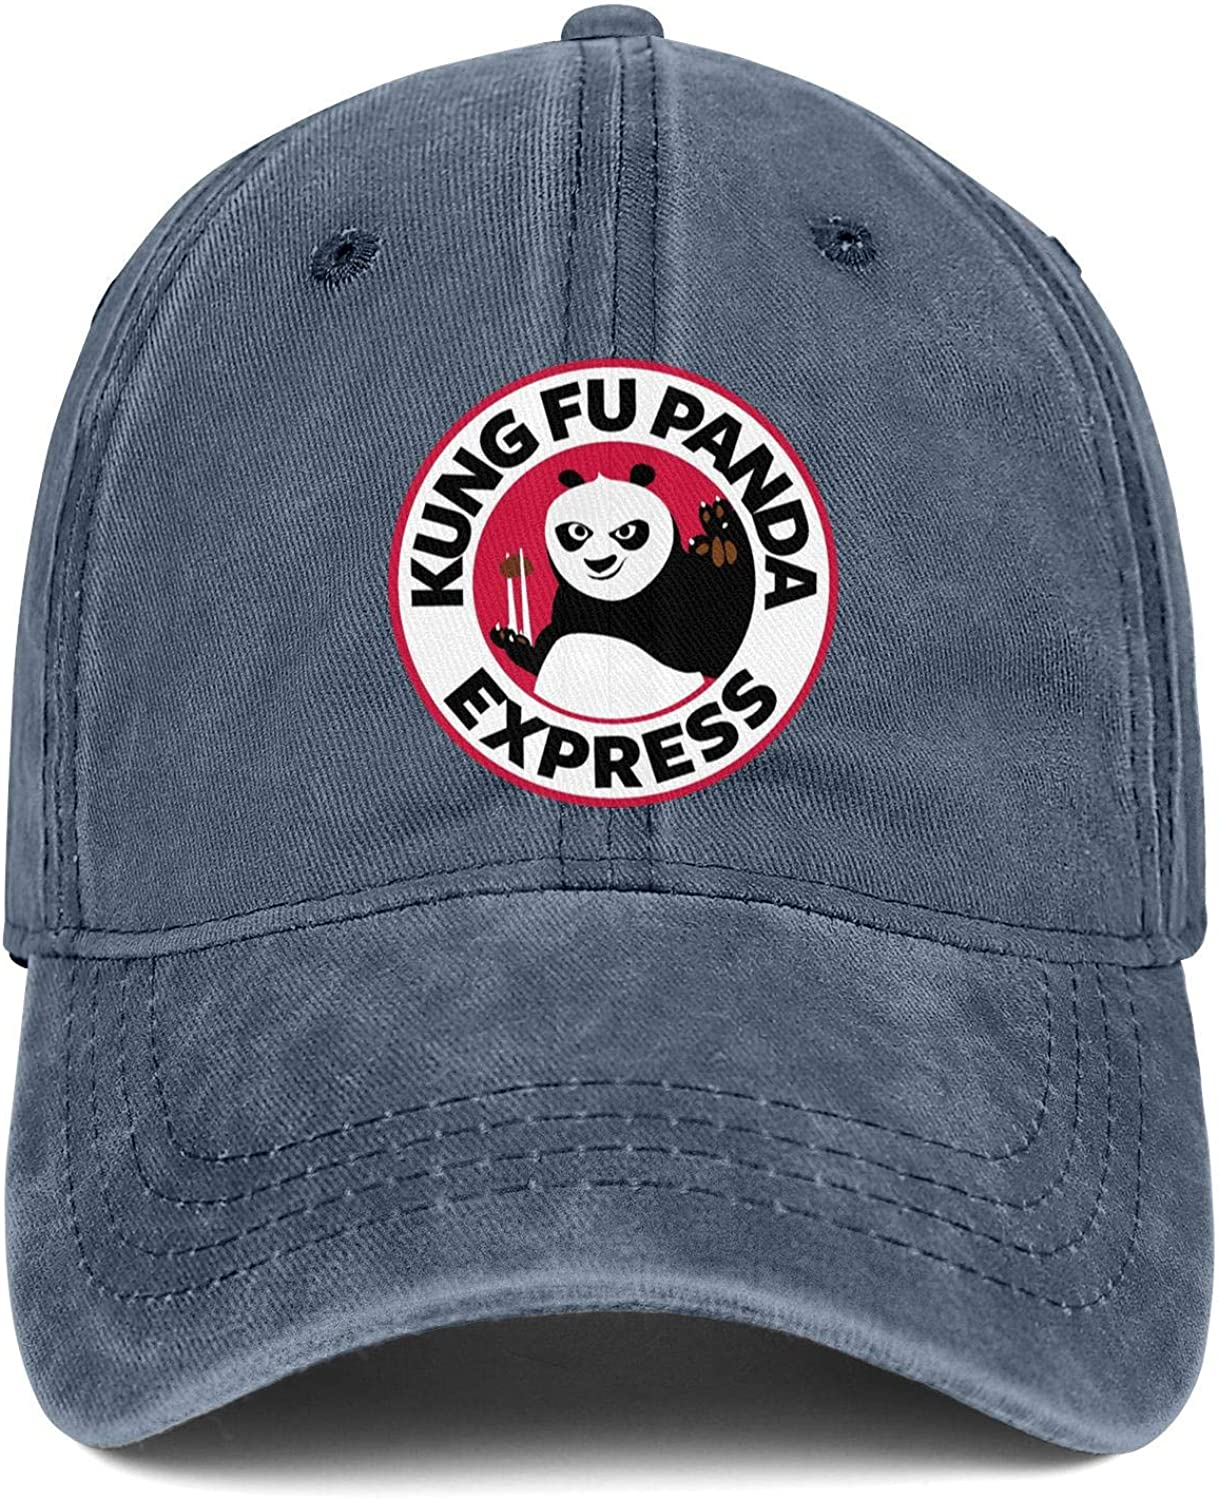 WintyHC Panda Express Cowboy Hat Bucket Hat One Size Baseball Cap